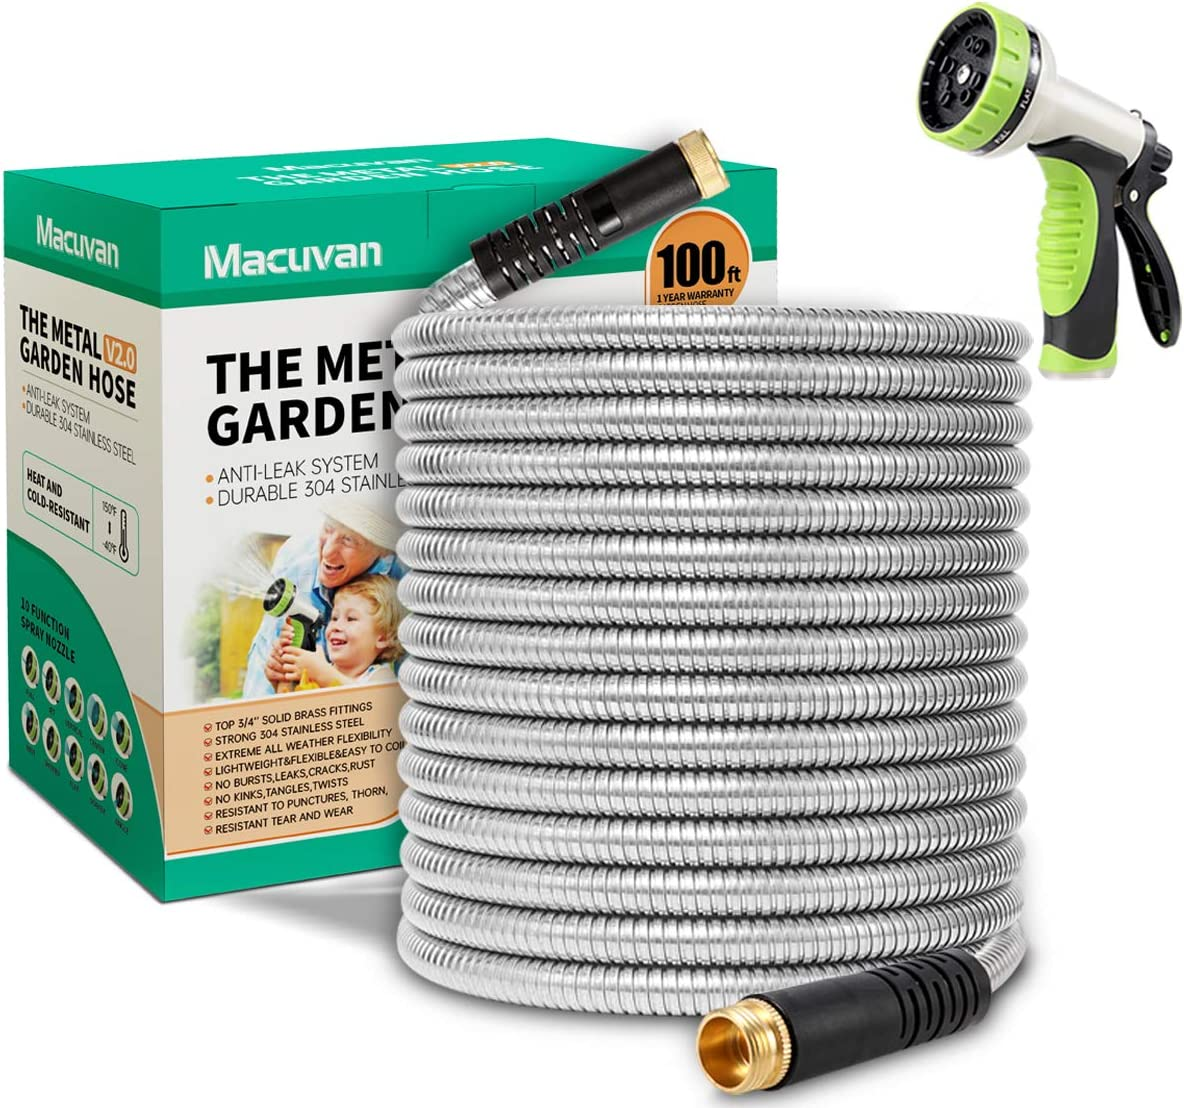 Macuvan Flexible Metal Garden Hose 100ft-Heavy Duty Water Hose with Durable 304 Stainless Steel and 10 Way Spray Nozzle-Strong 3/4'' Solid Brass Fittings-Outdoor Yard No Kink Lightweight Hose Pipe